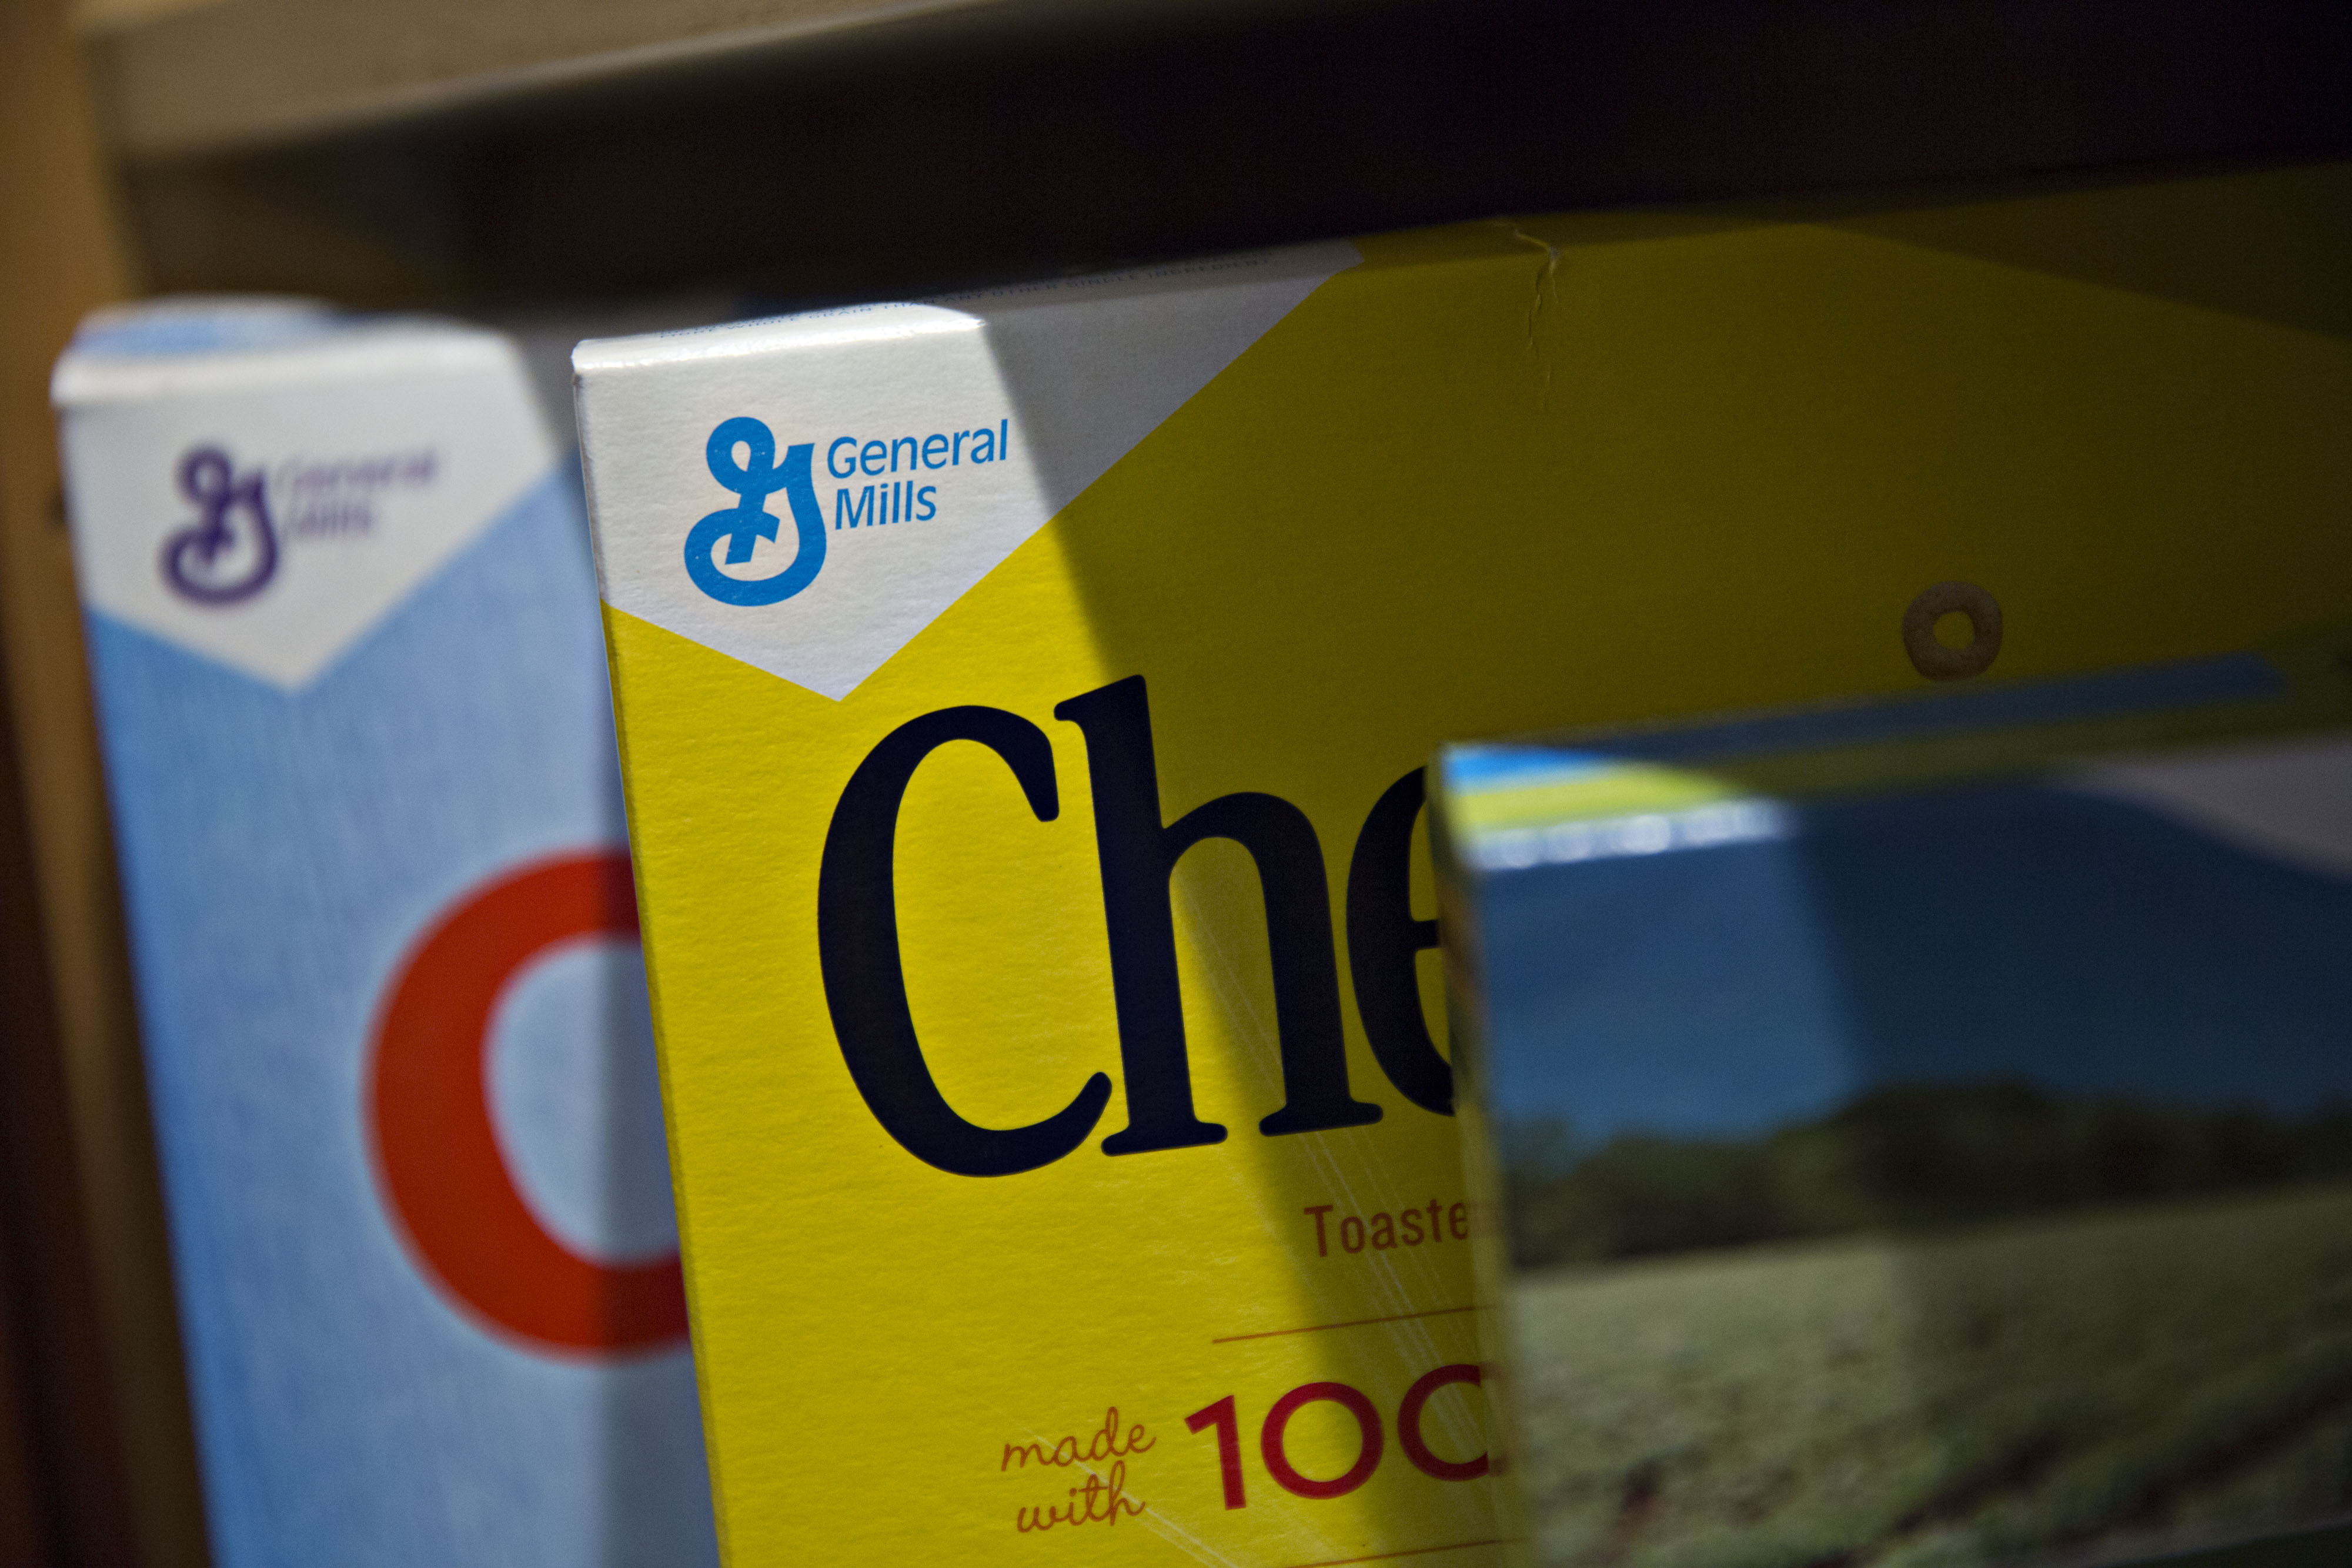 General Mills Inc. logos appear on boxes of Cheerios and Rice Chex brand cereal arranged for a photograph in Tiskilwa, Illinois, U.S., on Tuesday, Sept. 20, 2016.